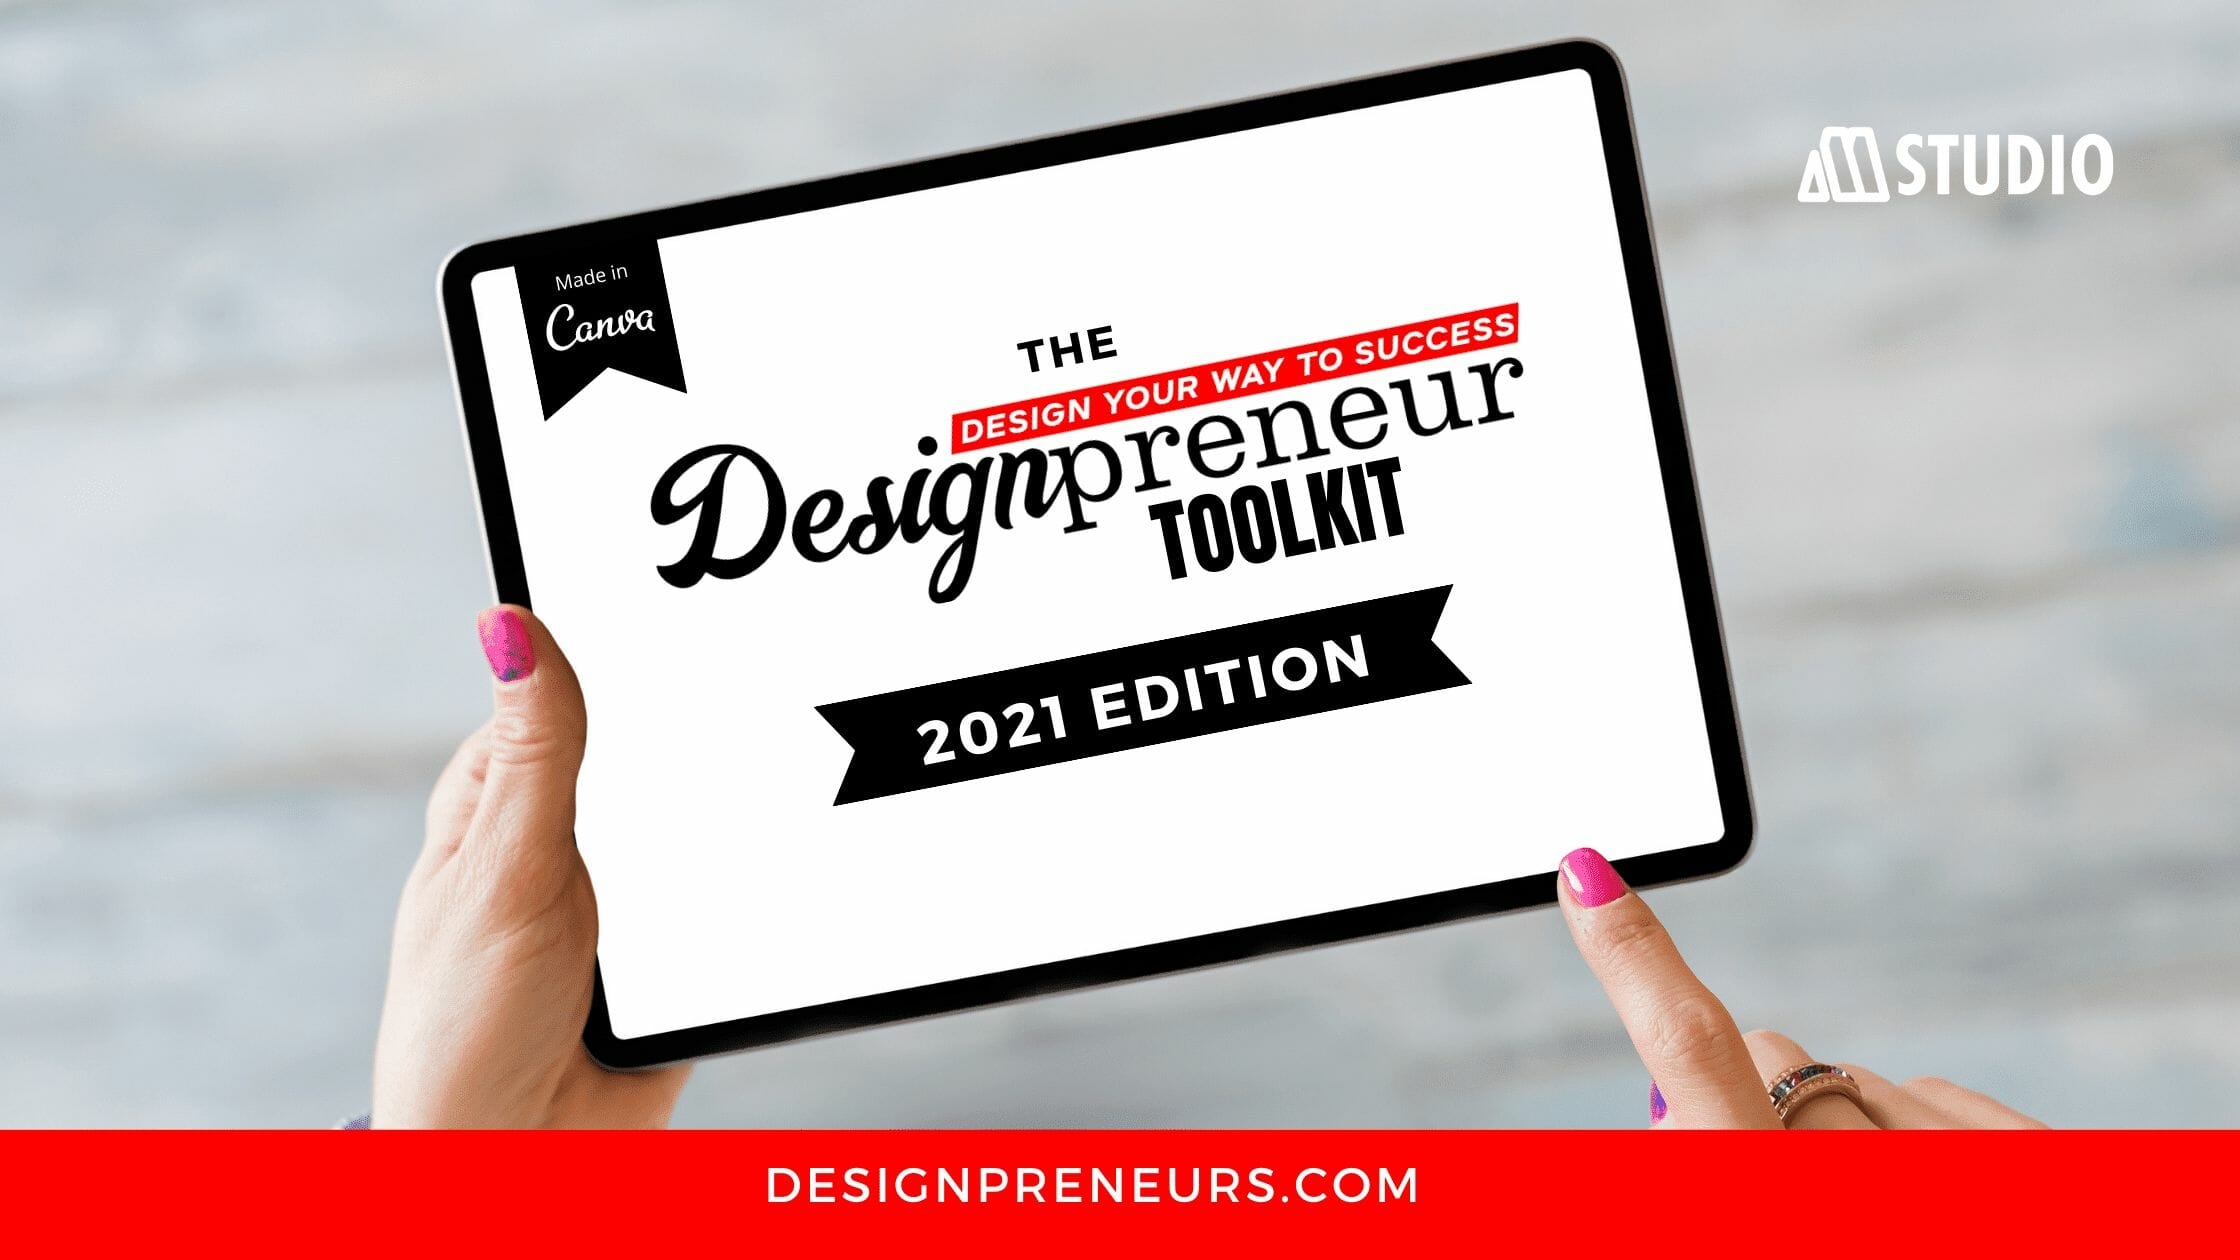 Design your way to Success with the Designpreneurs Toolkit 2021